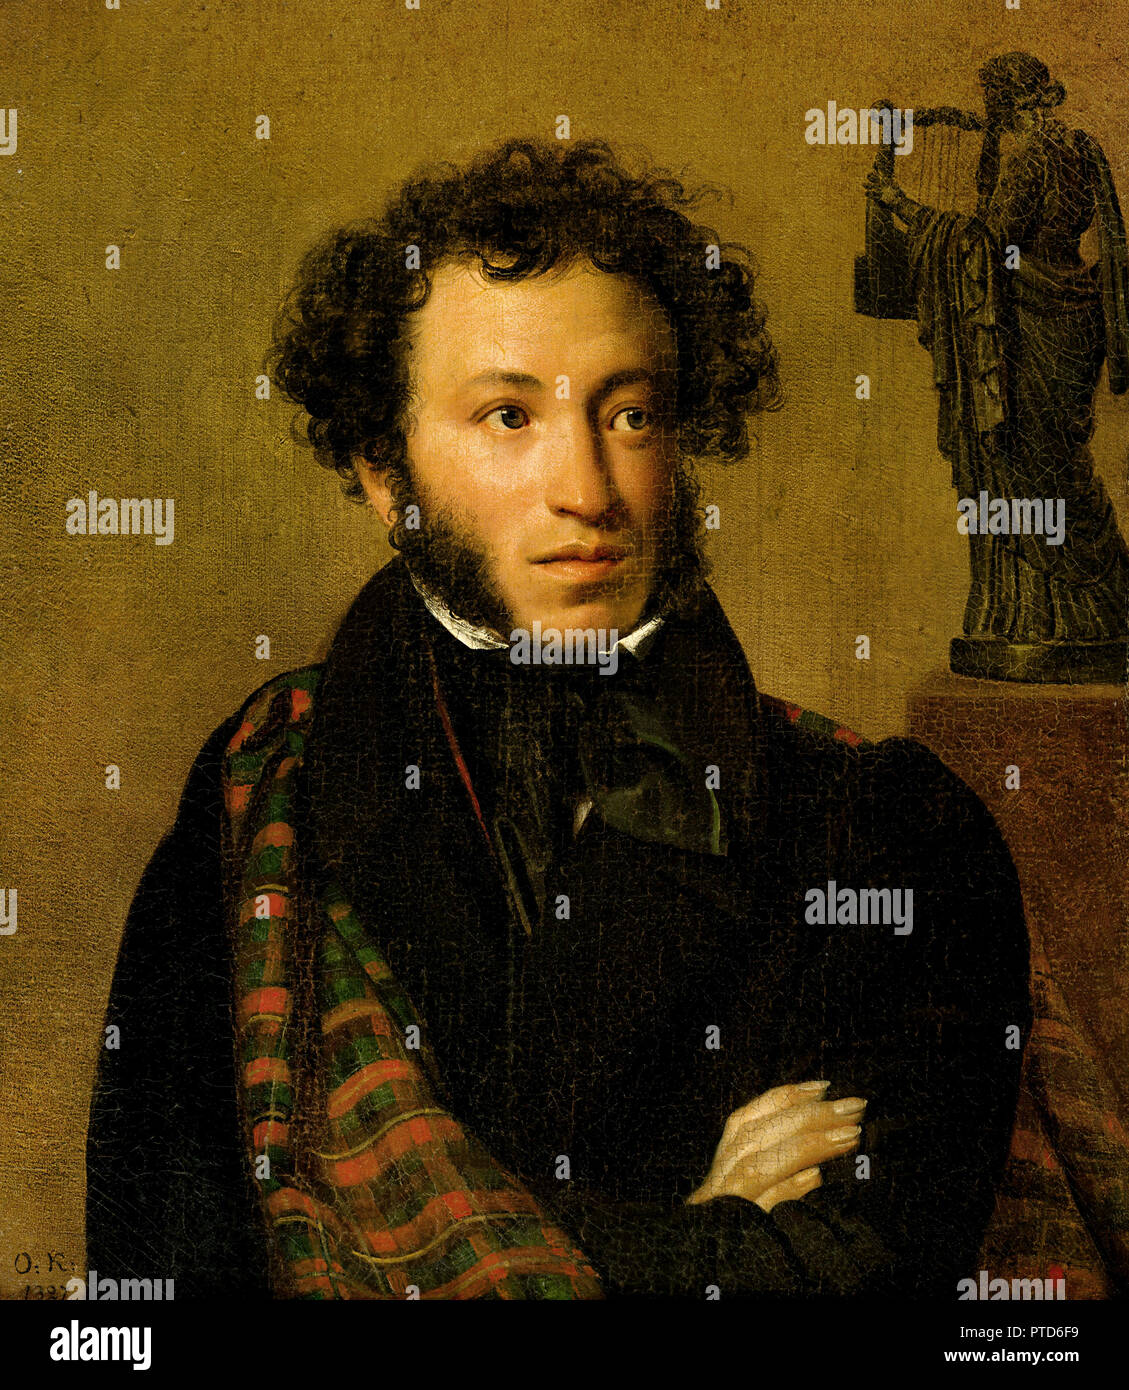 Orest Kiprensky, Portrait of A.S.Pushkin 1827 Oil on canvas, Tretyakov Gallery, Moscow, Russia. - Stock Image